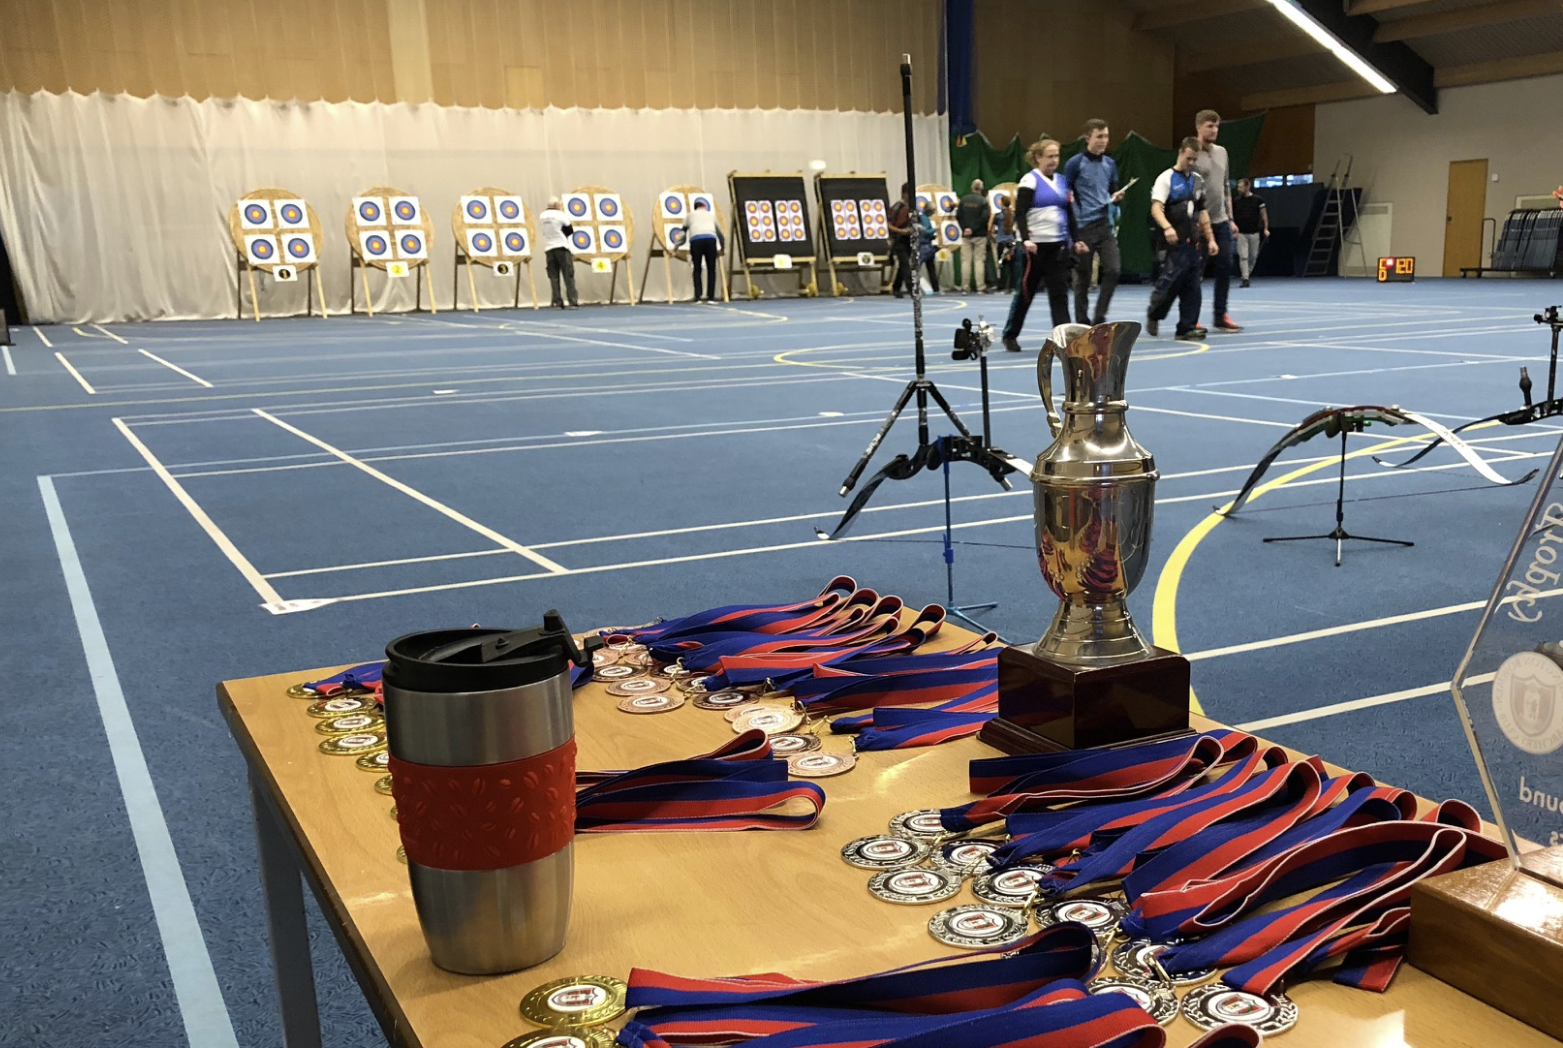 Bradford Memorial Tournament formerly King's Cup - Sat 16th February 2019